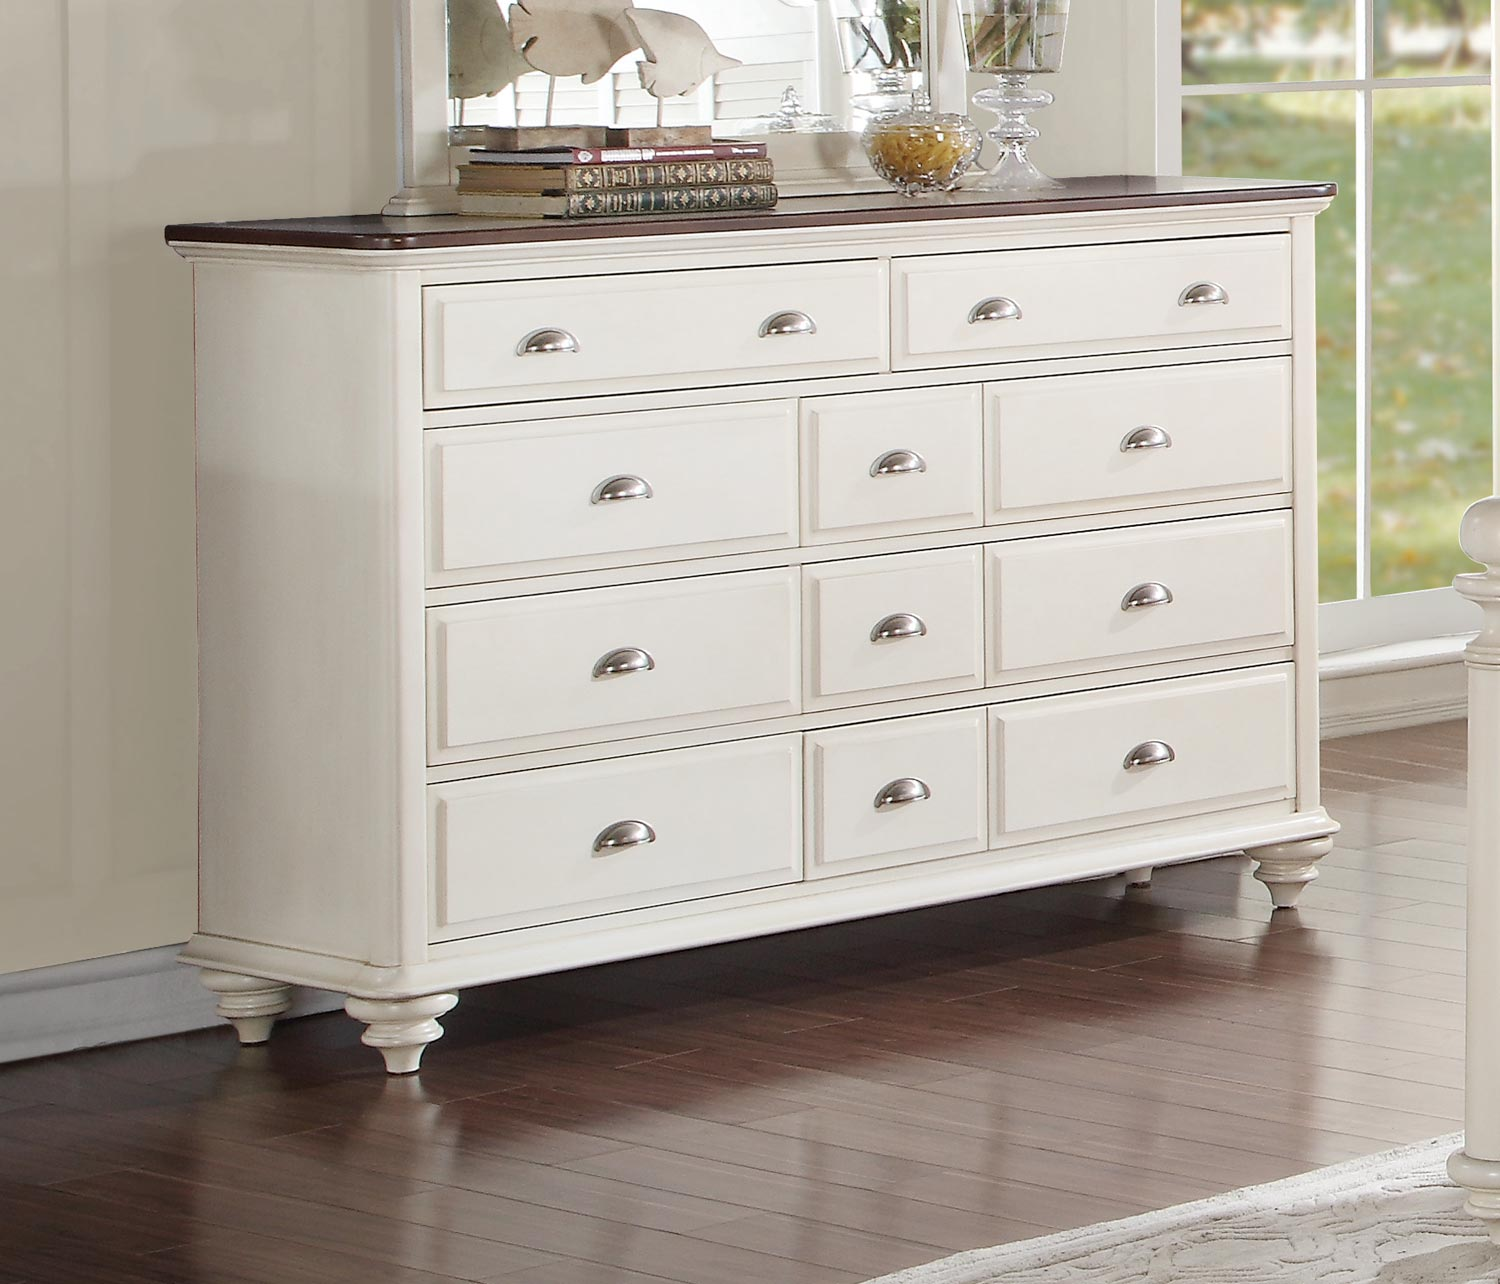 Homelegance Floresville Dresser - Antique White